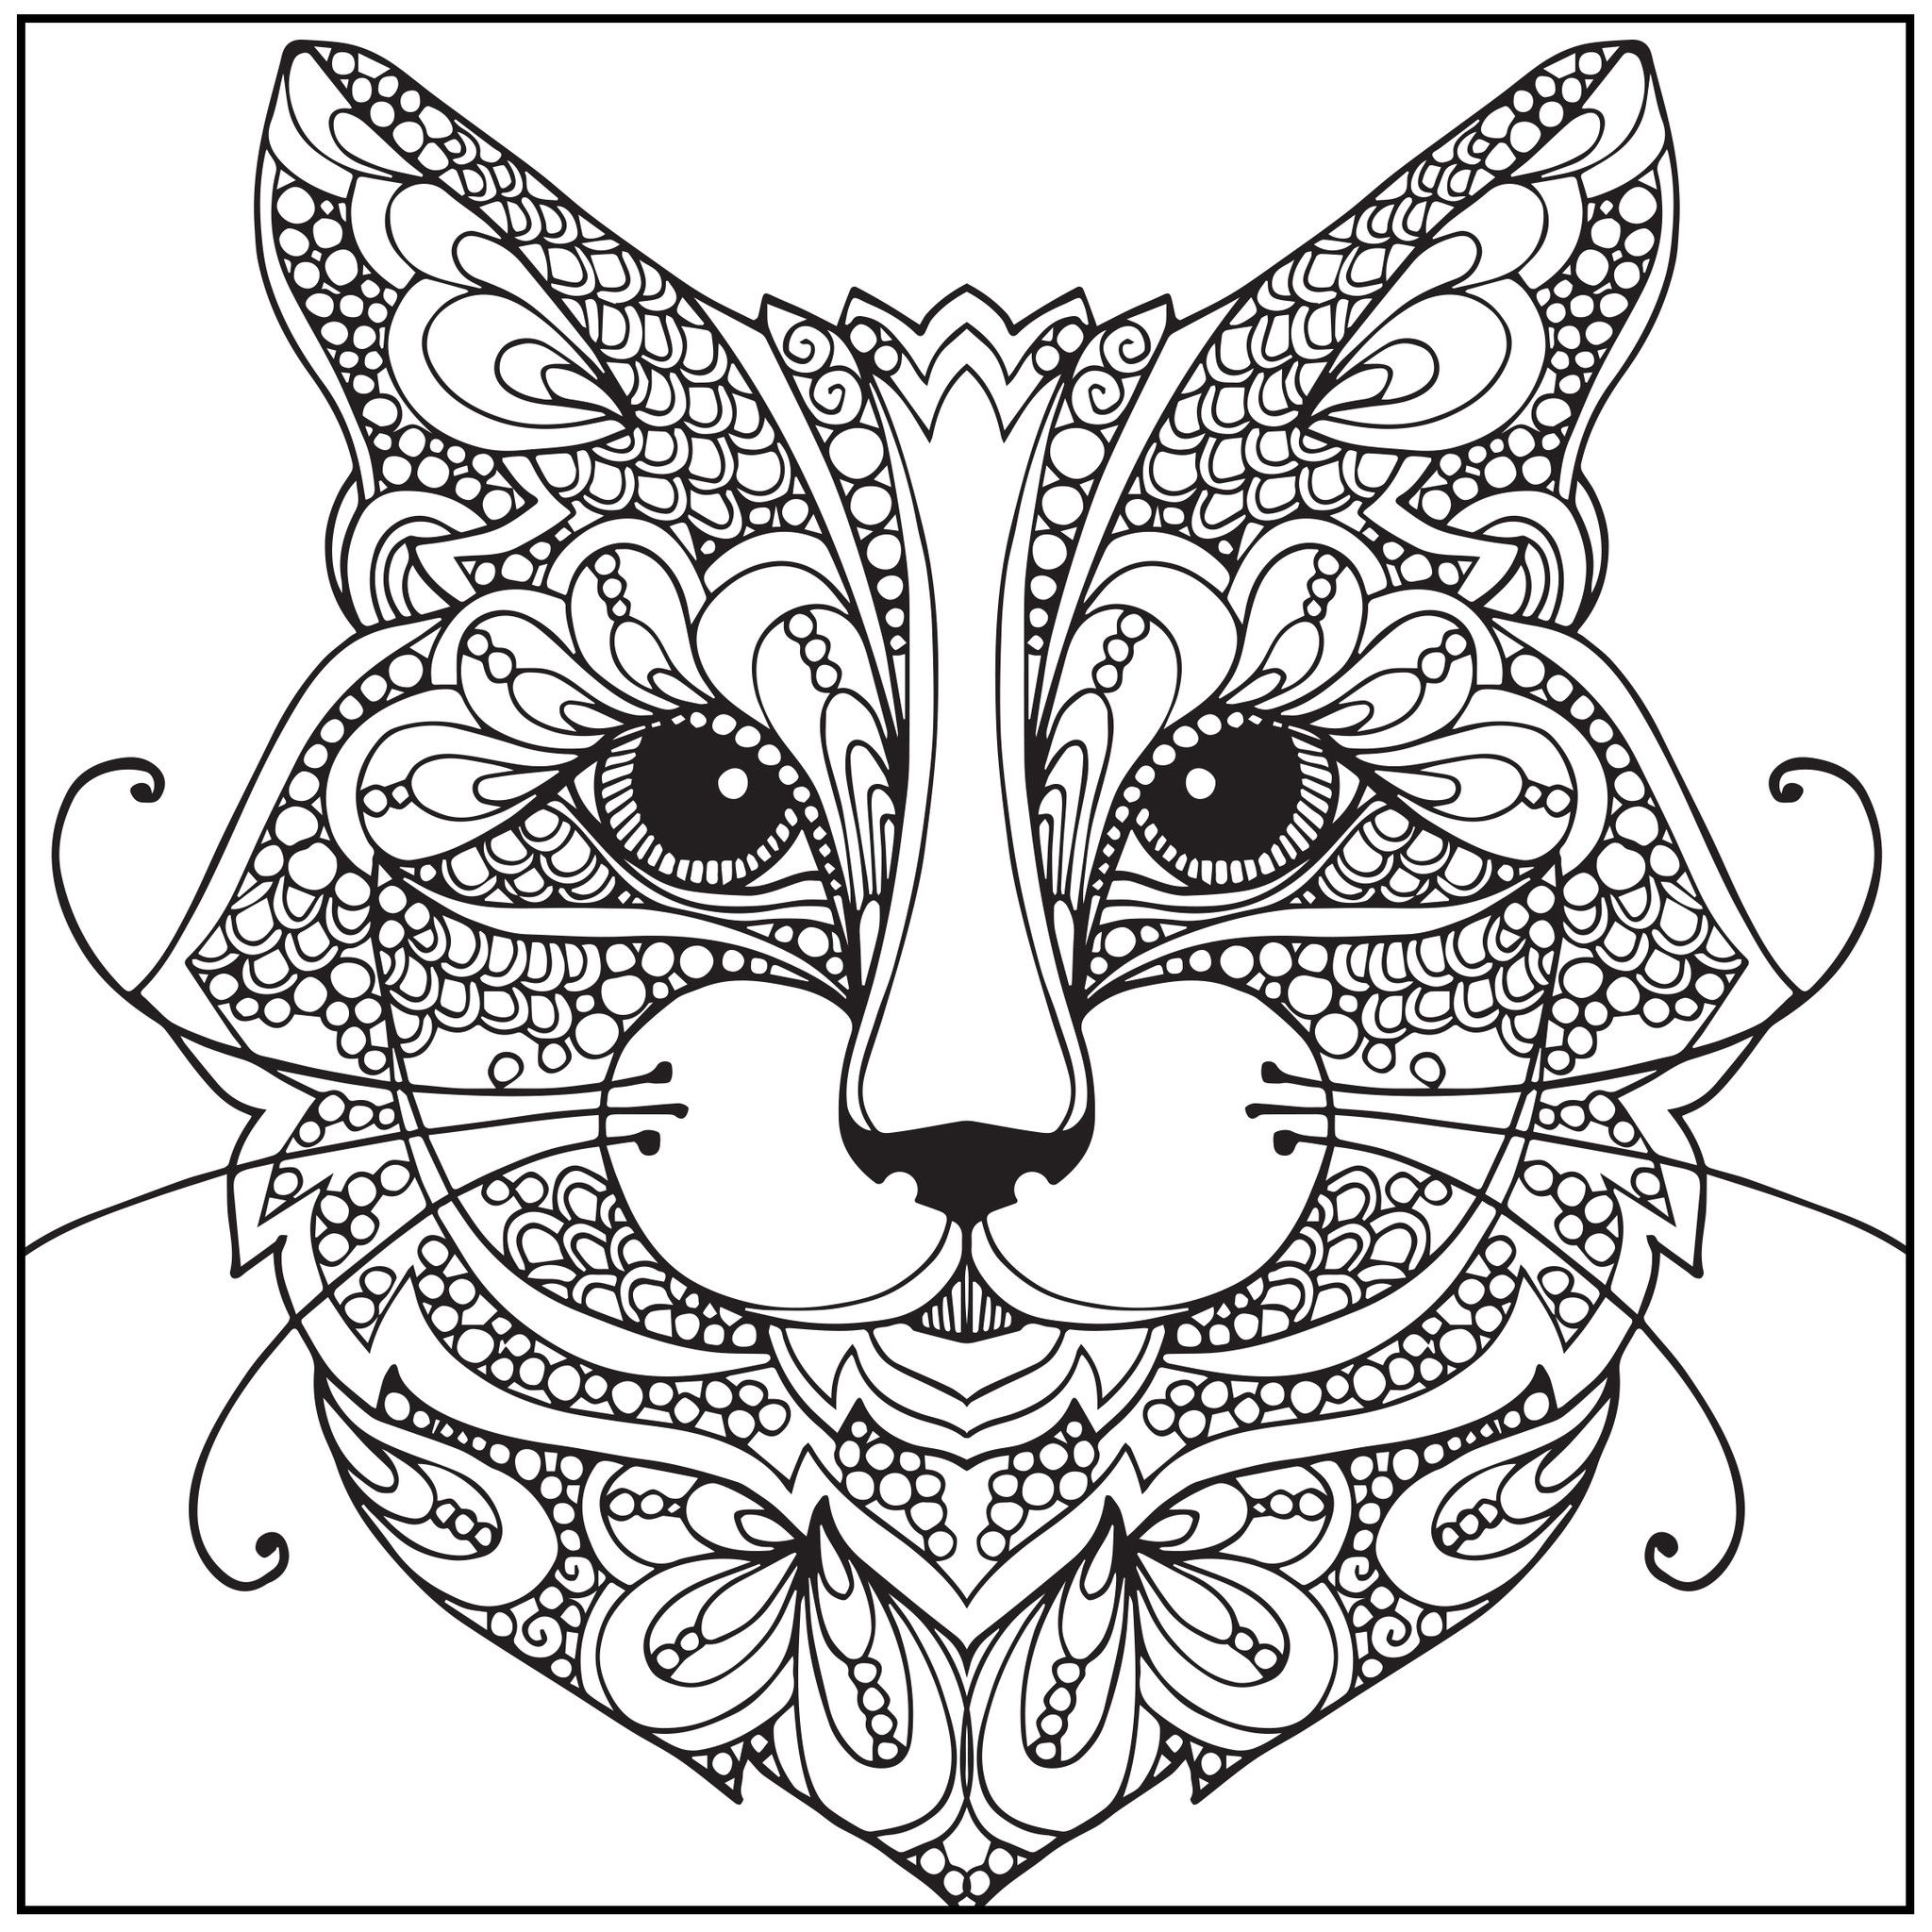 coloring pages of animals cats - photo#26